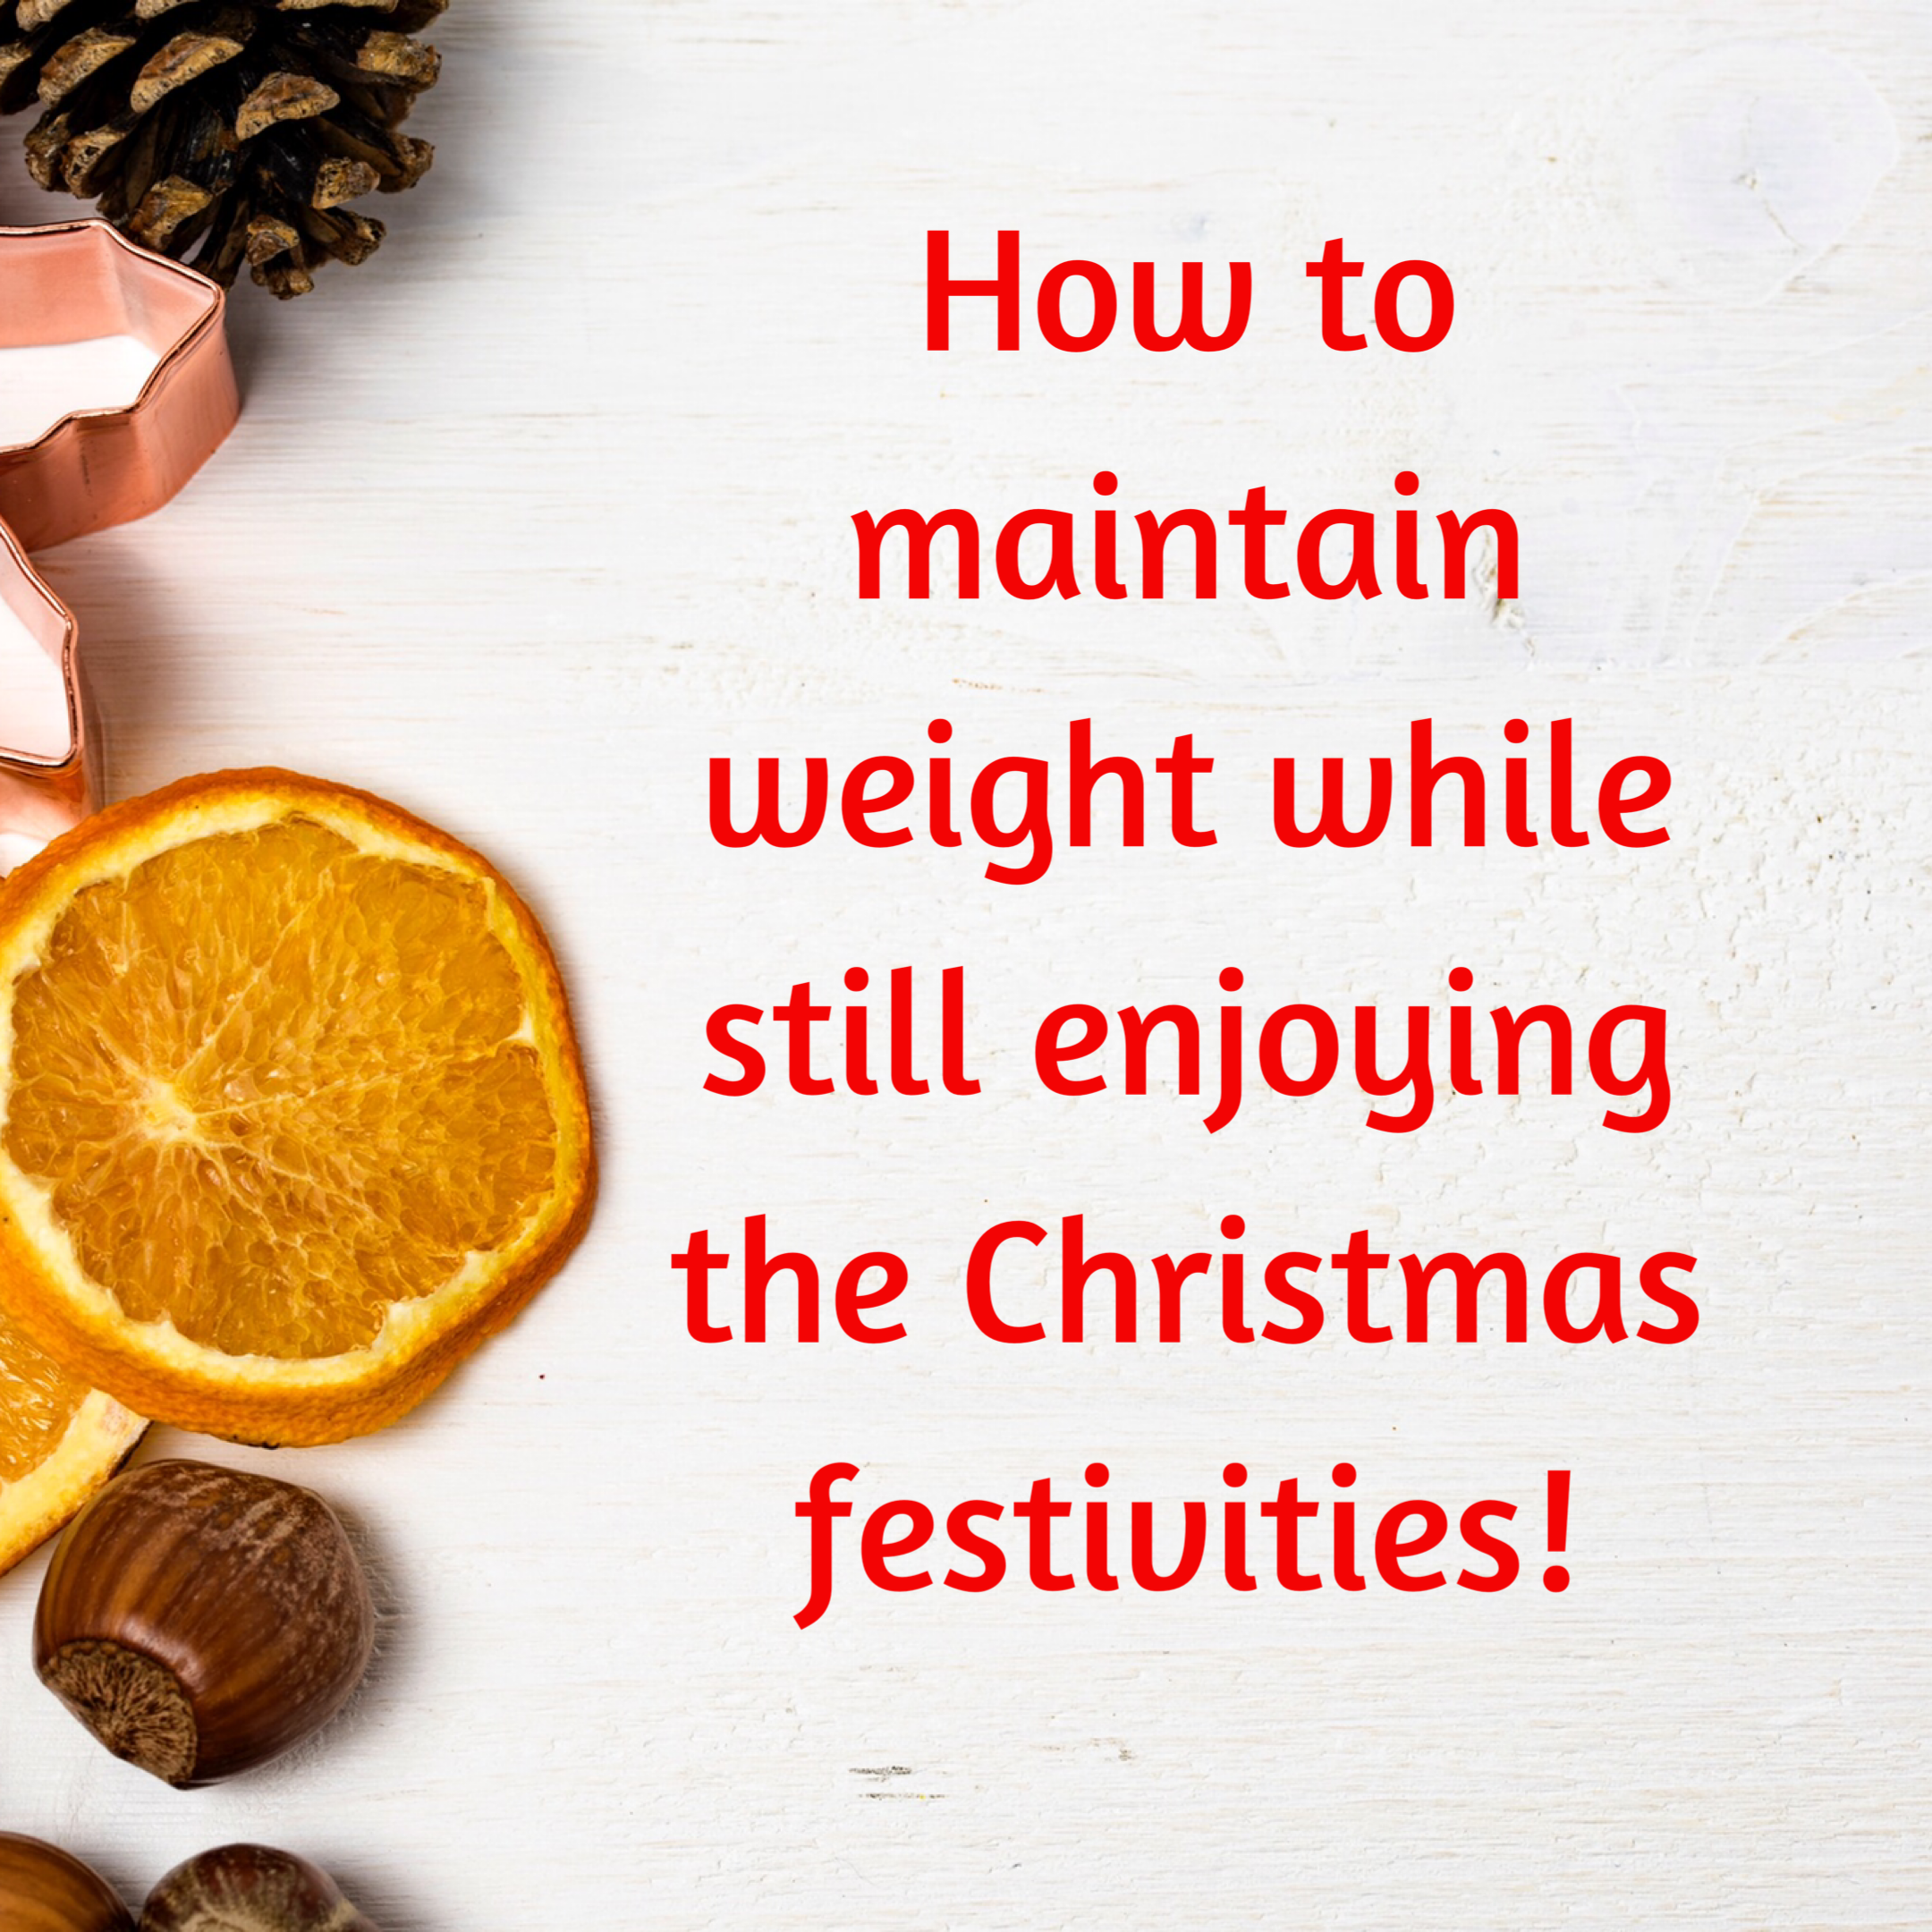 How to maintain weight while still enjoying the Christmas festivities!